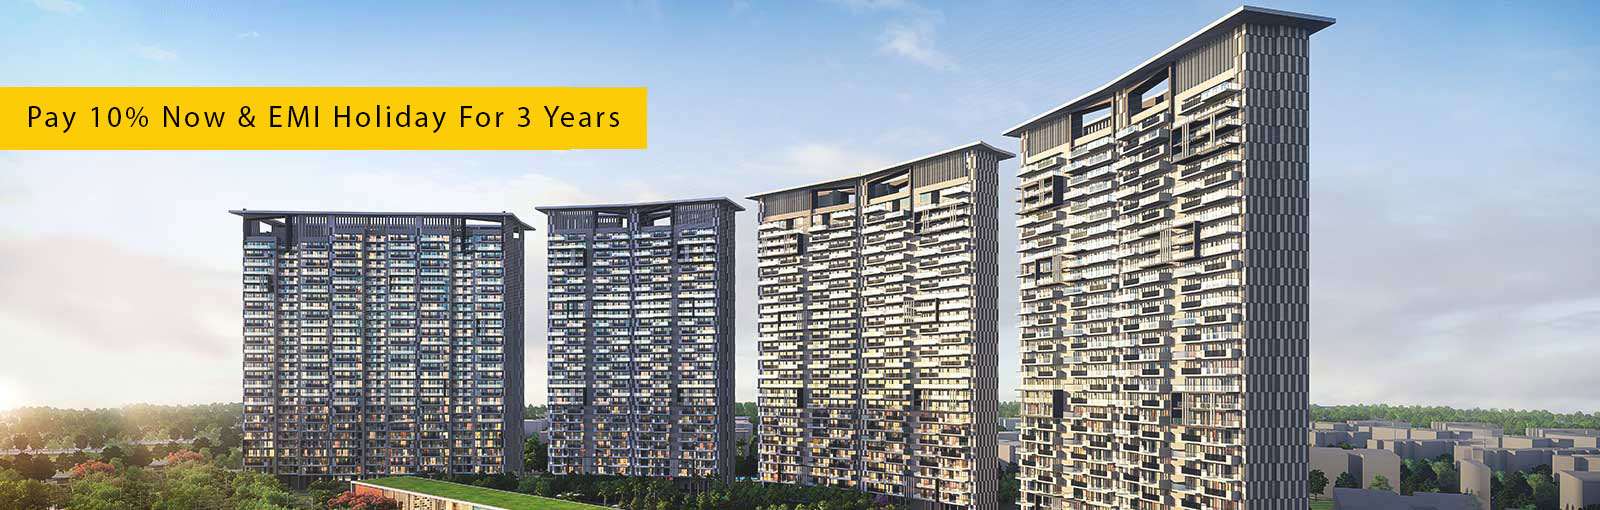 Pay 10 now EMI holiday for 3 years at Prateek Canary Noida